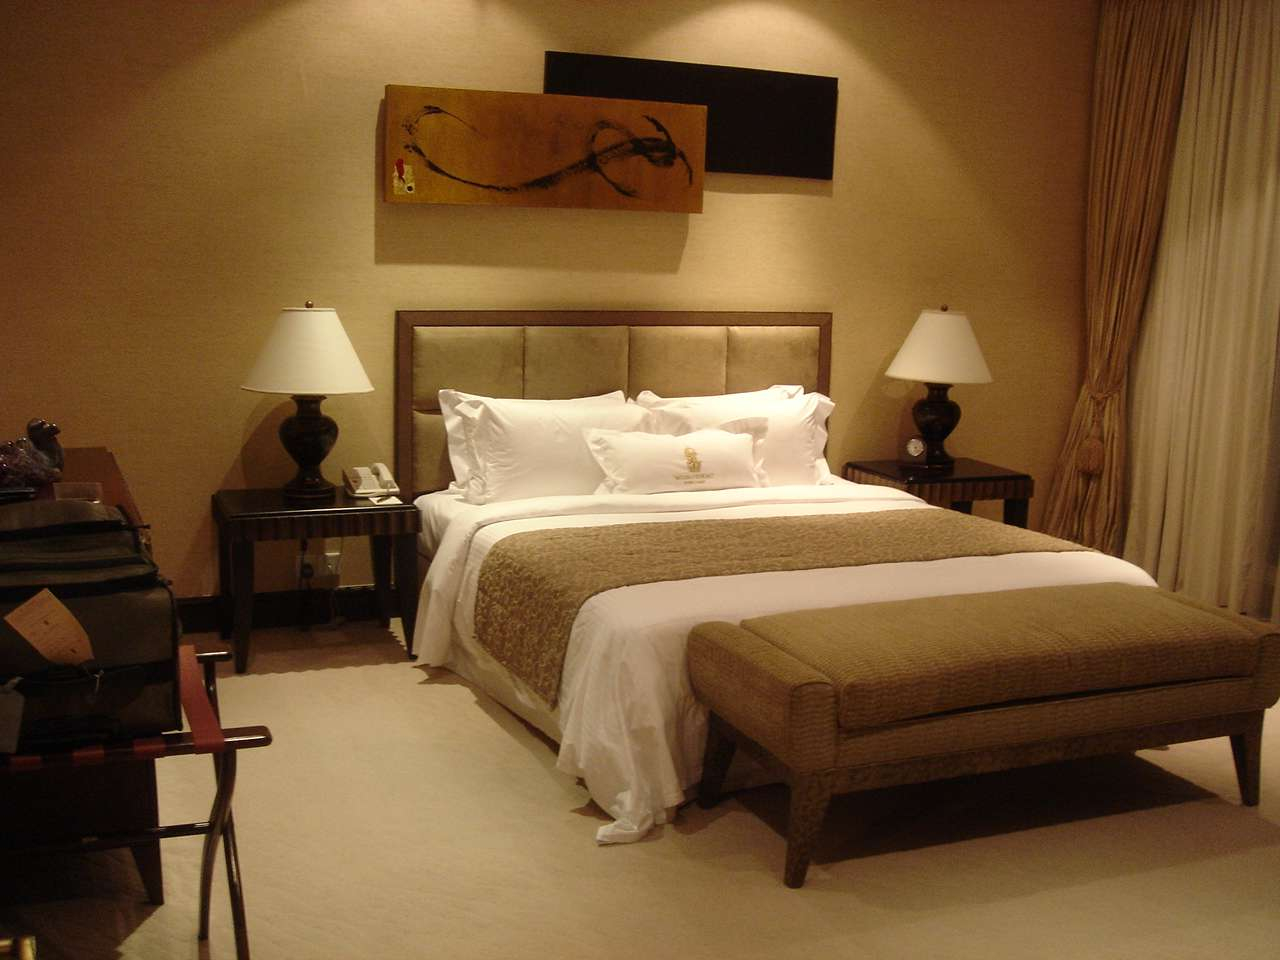 Interior Design Ideas Bedroom with Maximum Relaxation Support